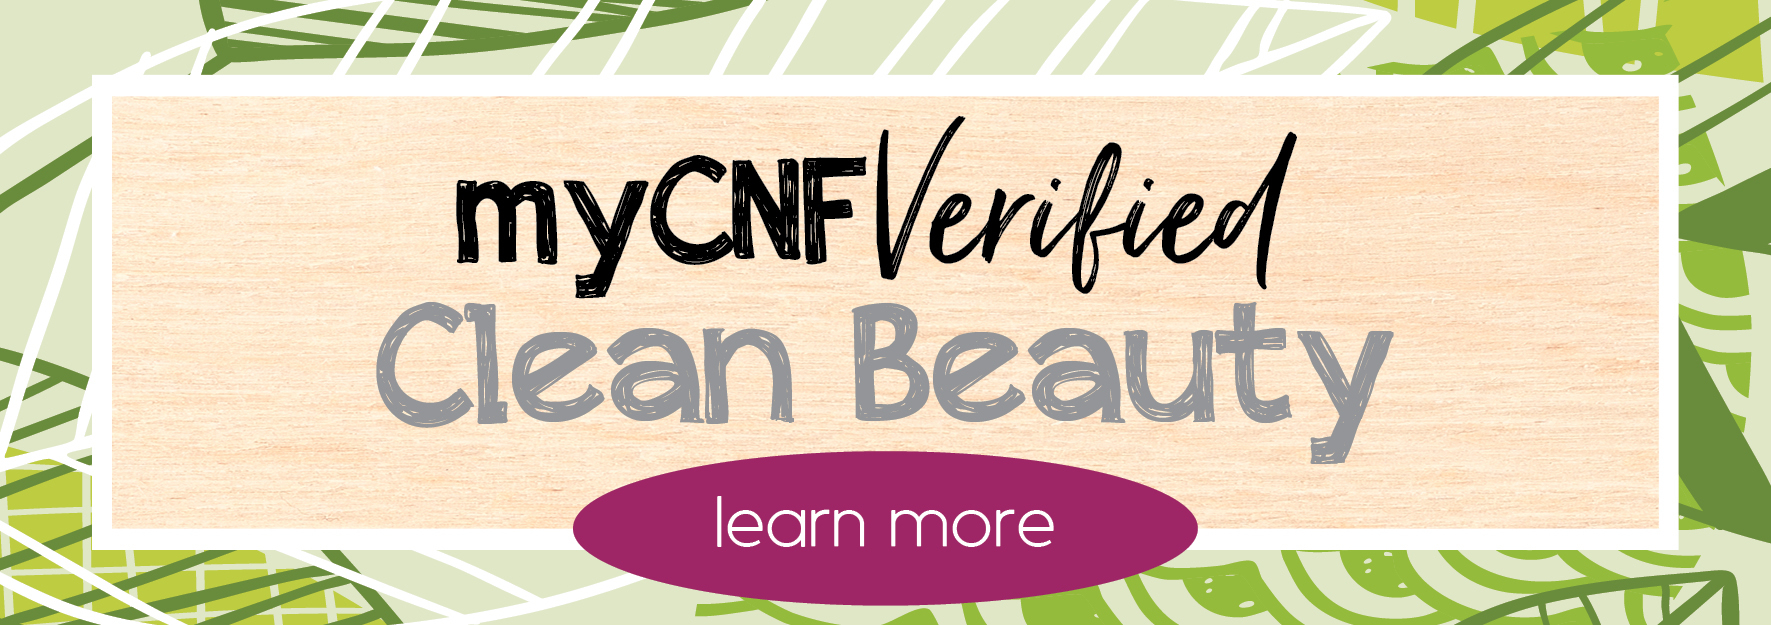 mycnf verified clean beauty